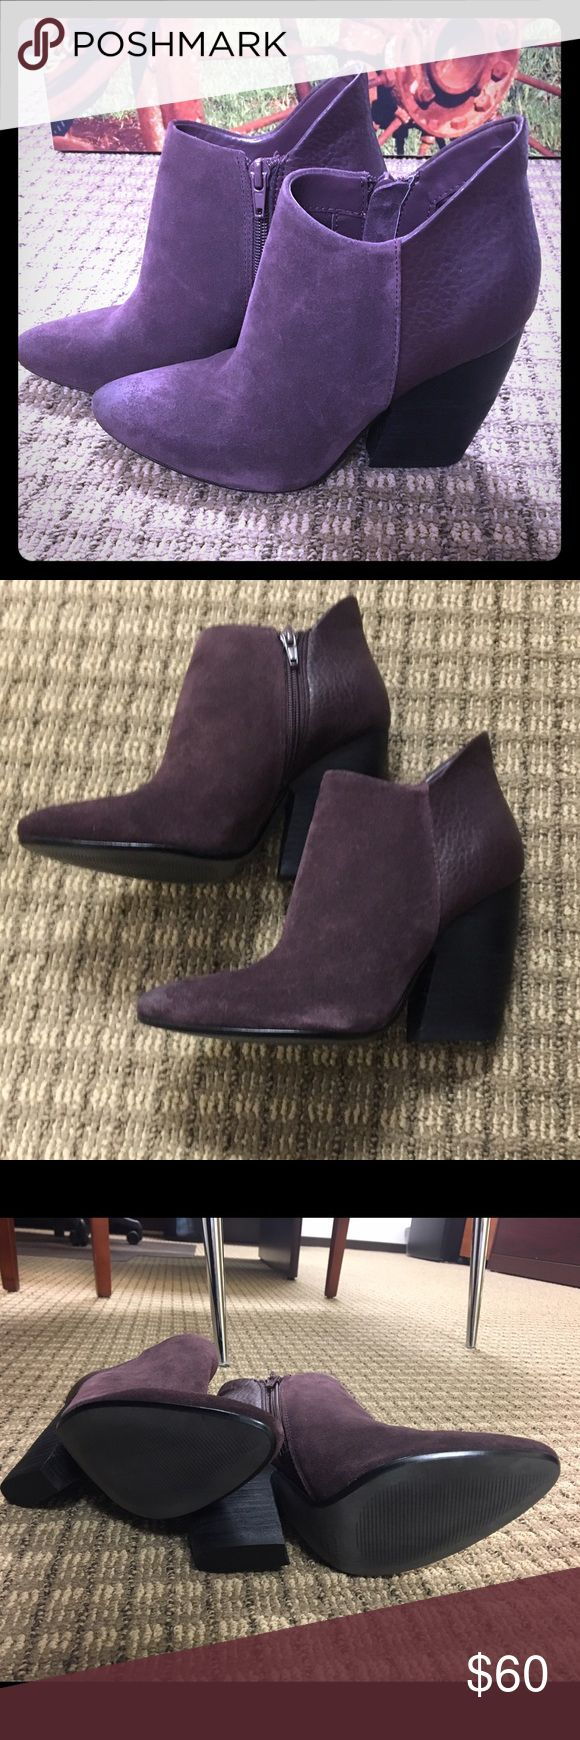 BRAND-NEW! ⭐️Crown Vintage Ankle Boots. SZ 6 🌟Brand-new, never worn!! 🌟Crown Vintage Suede ankle boots in PLUM. Size 6 with side zipper & 3 1/2 inch heel. Very cool edgy boots. Great color, that acts as a neutral. Crown Vintage.  Shoes Ankle Boots & Booties